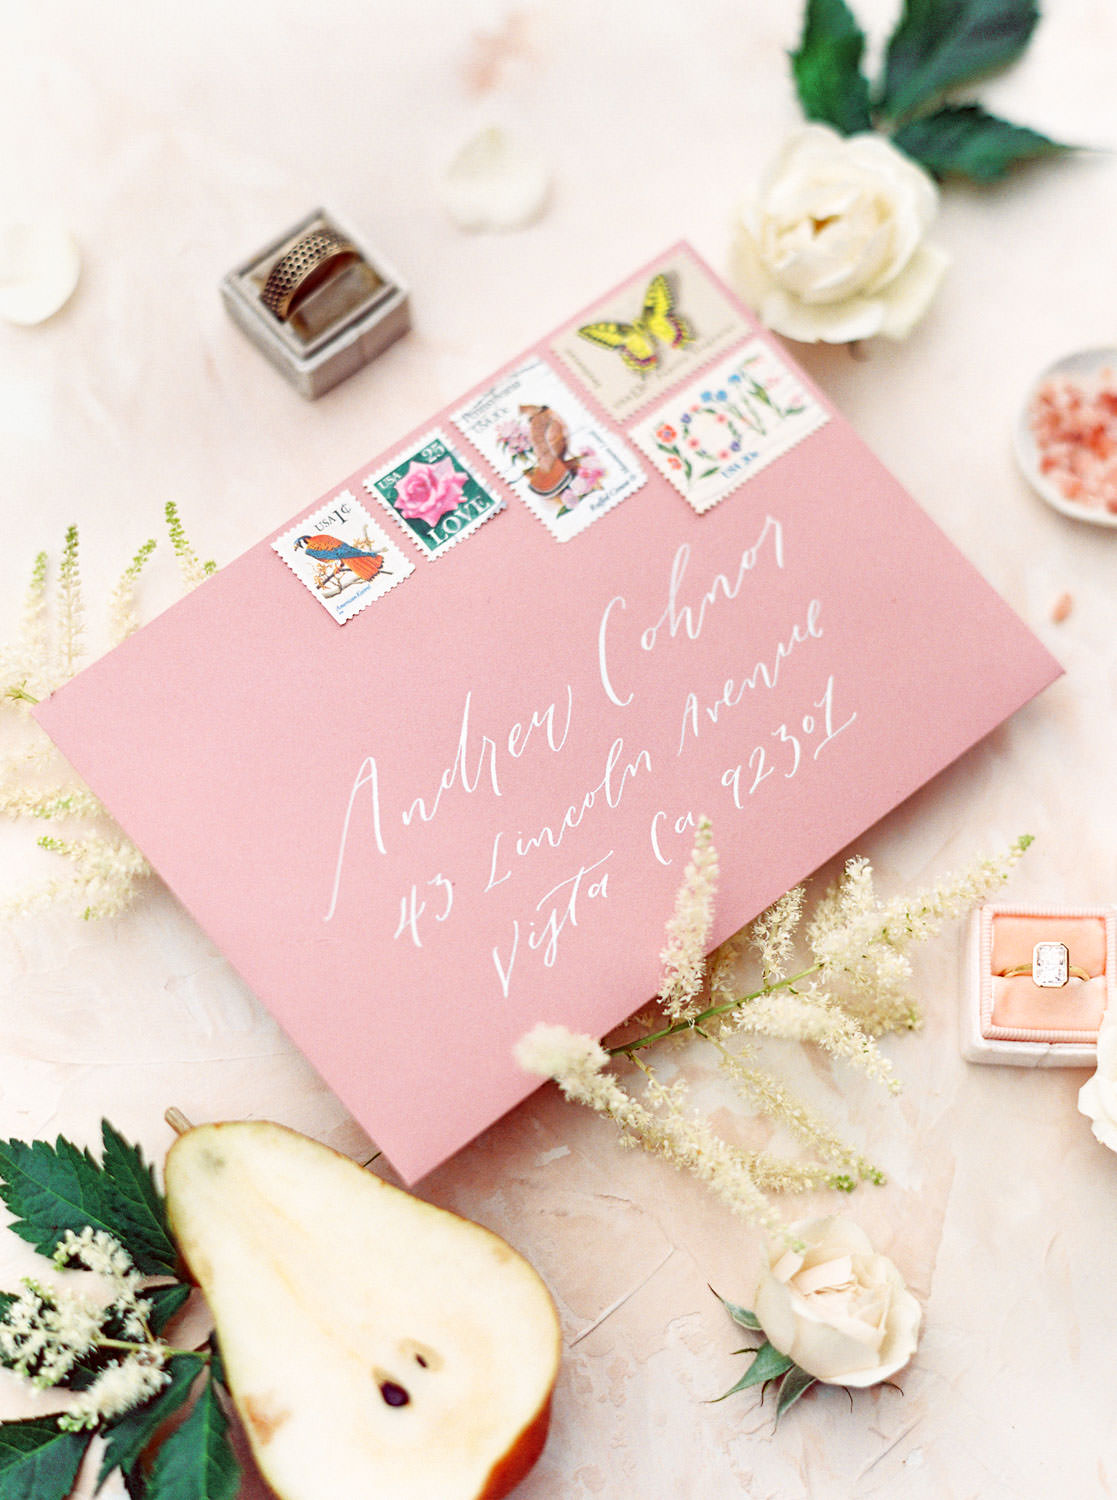 Mauve wedding envelopes with white ink styled with pears, roses, greenery, rings, and pink salt. Honey and Beekeeper Inspired Wedding at Rancho Valencia on film by Cavin Elizabeth Photography